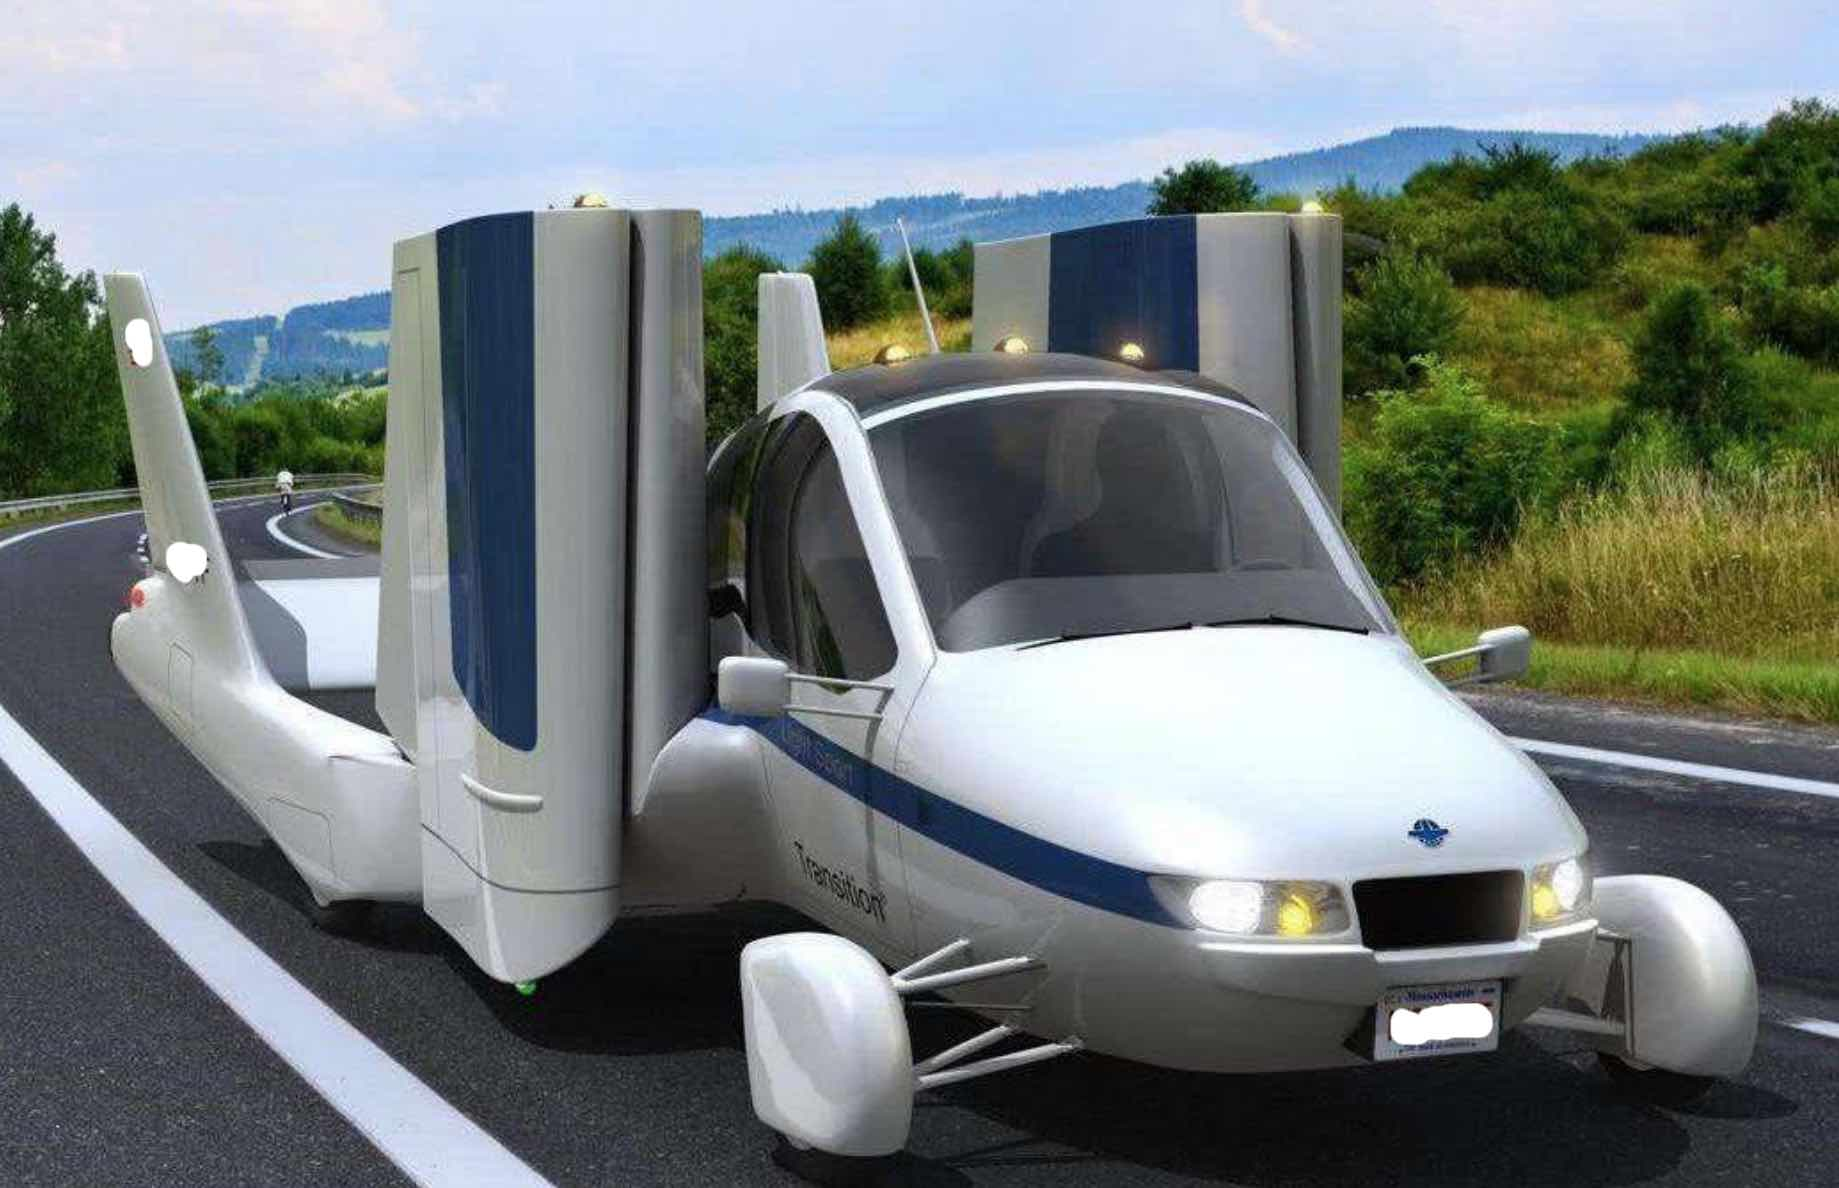 Geely's first flying car